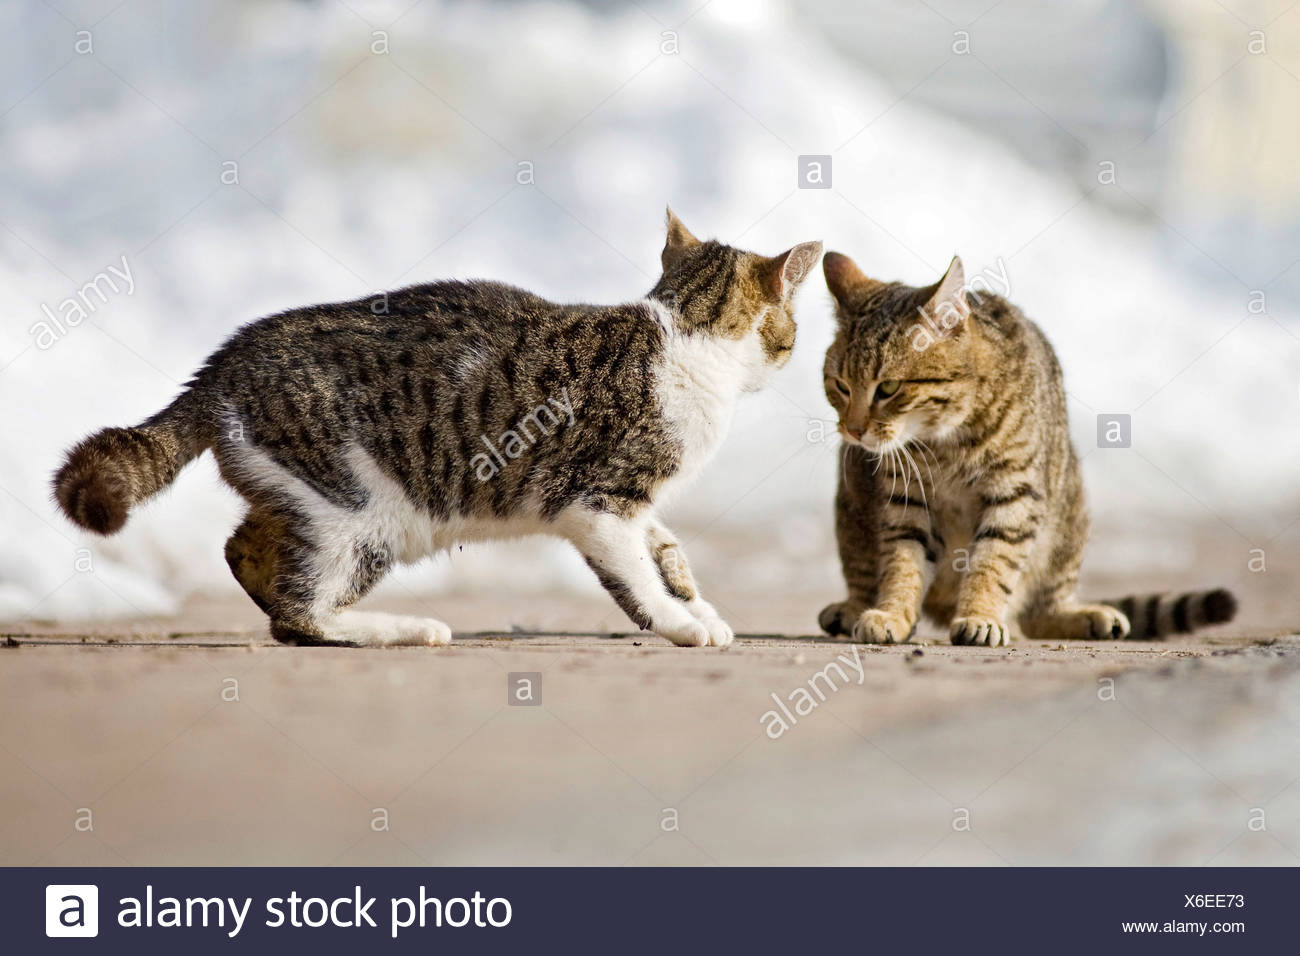 Two young tabby tomcats in a territorial fight in the snow, Satteldorf, Hohenlohe, Baden-Württemberg, Germany - Stock Image